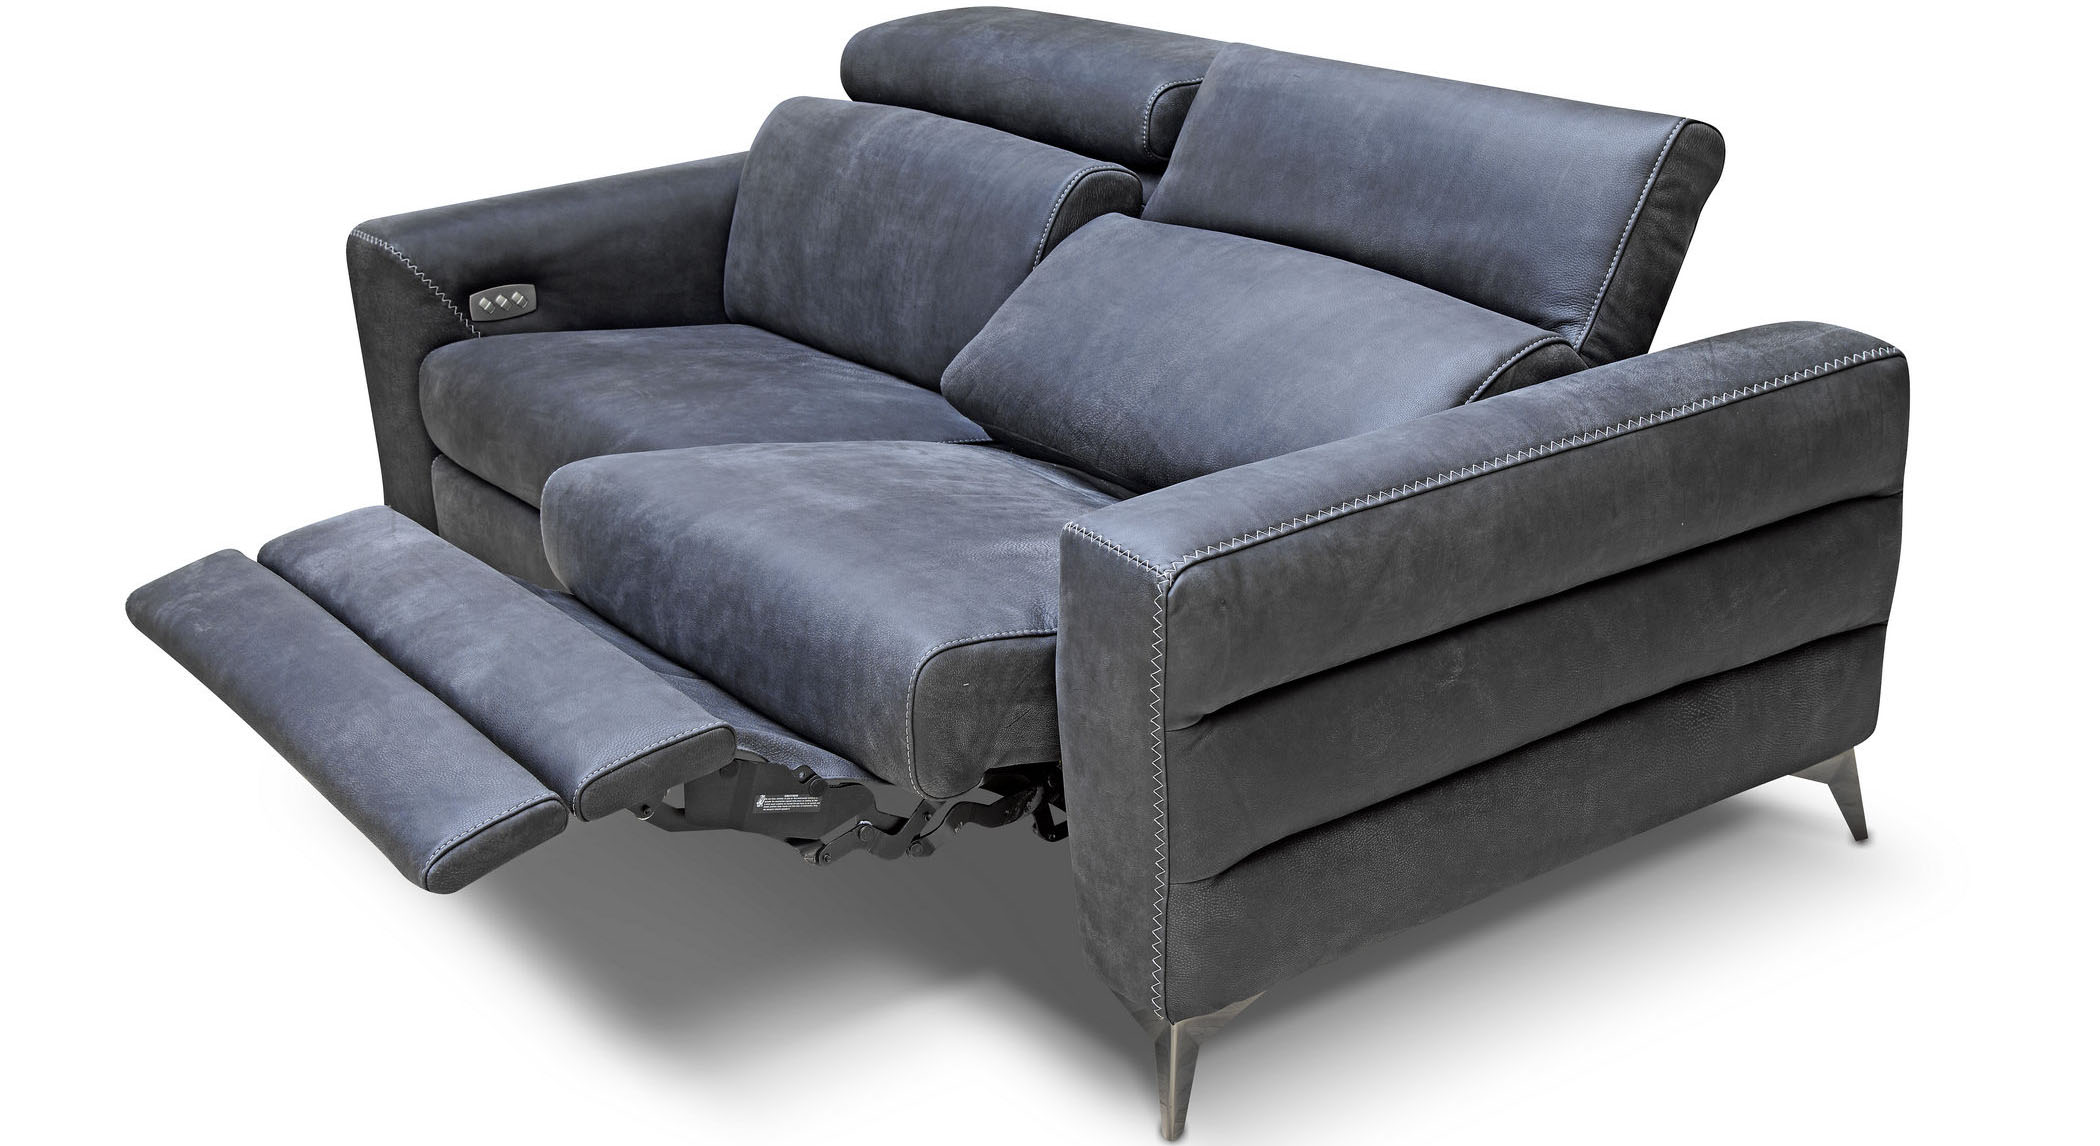 Bracci Ermse power sofa